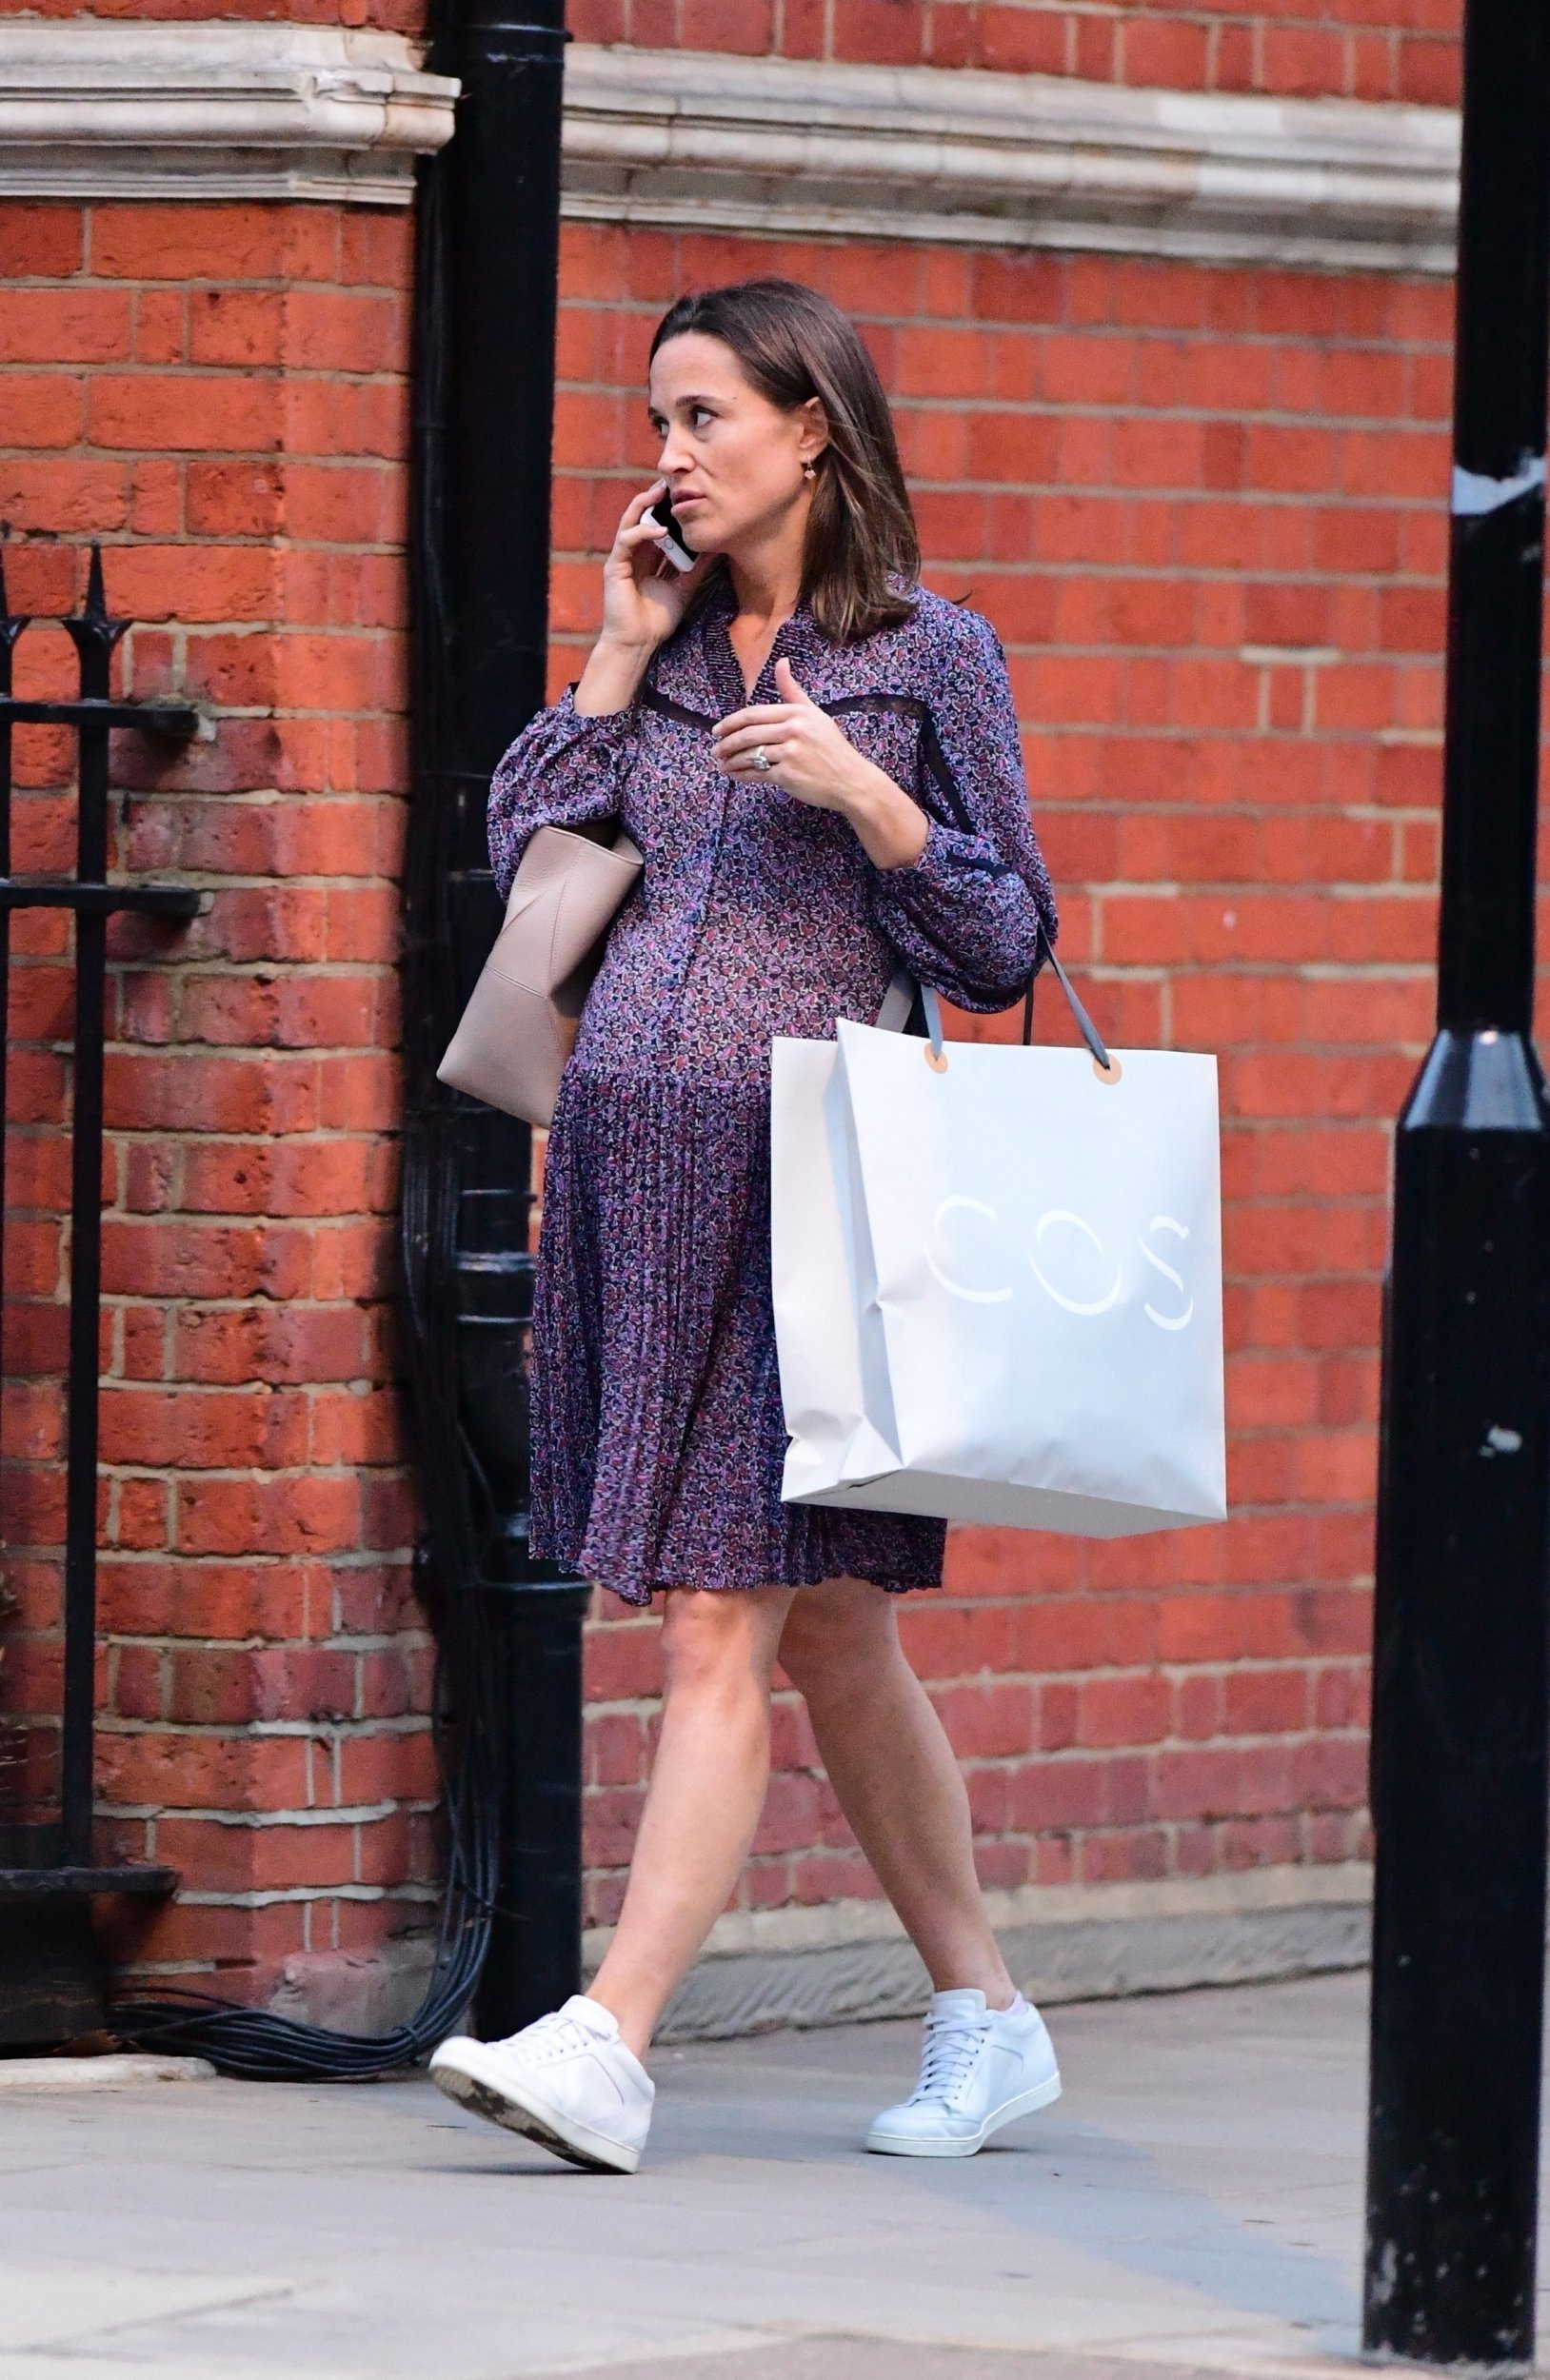 BGUK_1360434 - *PREMIUM-EXCLUSIVE* ** RIGHTS: WORLDWIDE EXCEPT IN ITALY ** London, UNITED KINGDOM - *MUST CALL FOR PRICING* *STRICT WEB EMBARGO UNTIL 3:40pm UK TIME ON OCT 7th, 2018** Pippa Middleton who is fast nearing her due date, is spotted looking relaxed and healthy ahead of her and her partner James's Big day . Pippa wore a lovely lilac dress and white trainers as she made her way to her vehicle . Pictured: Pippa Middleton BACKGRID UK 6 OCTOBER 2018 UK: +44 208 344 2007 / uksales@backgrid.com USA: +1 310 798 9111 / usasales@backgrid.com *UK Clients - Pictures Containing Children Please Pixelate Face Prior To Publication*